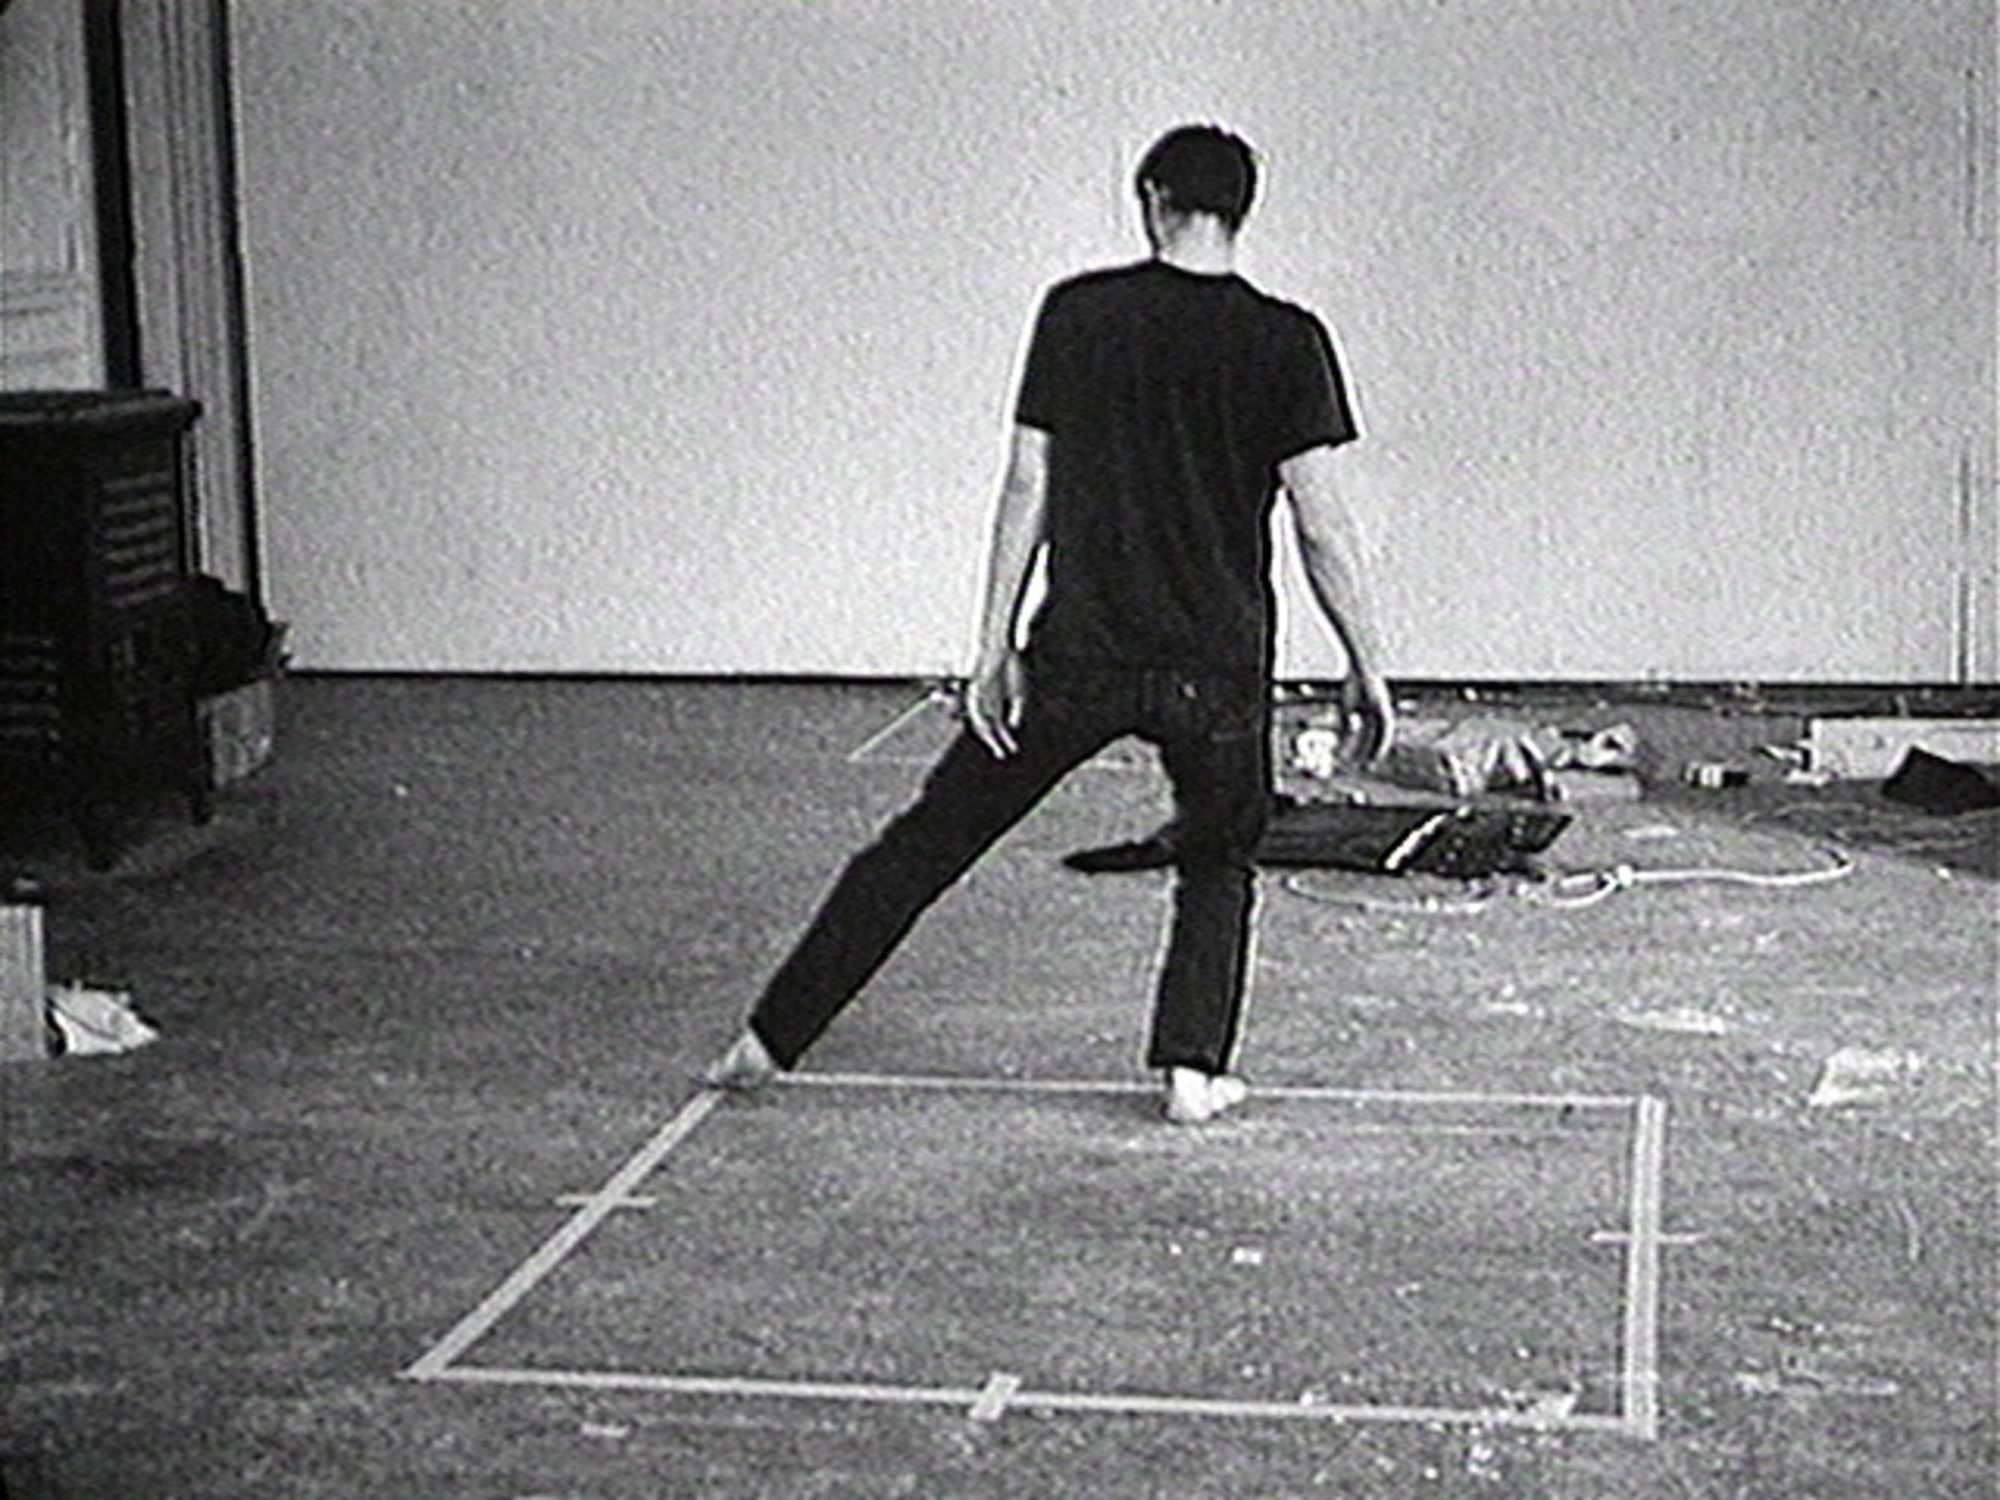 Bruce Nauman (American, born 1941). Dance or Exercise on the Perimeter of a Square (Square Dance). 1967‑1968. 16mm film transferred to video (black and white, sound). 10 min.. Uneditioned. The Museum of Modern Art, New York. Acquired through the generosity of Evanne and Edward J. Gargiulo, Jr. in honor of Ava, Emma and Jack Gargiulo. © 2021 Bruce Nauman / Artists Rights Society (ARS). Courtesy Electronic Arts Intermix (EAI), New York. 581.2008.